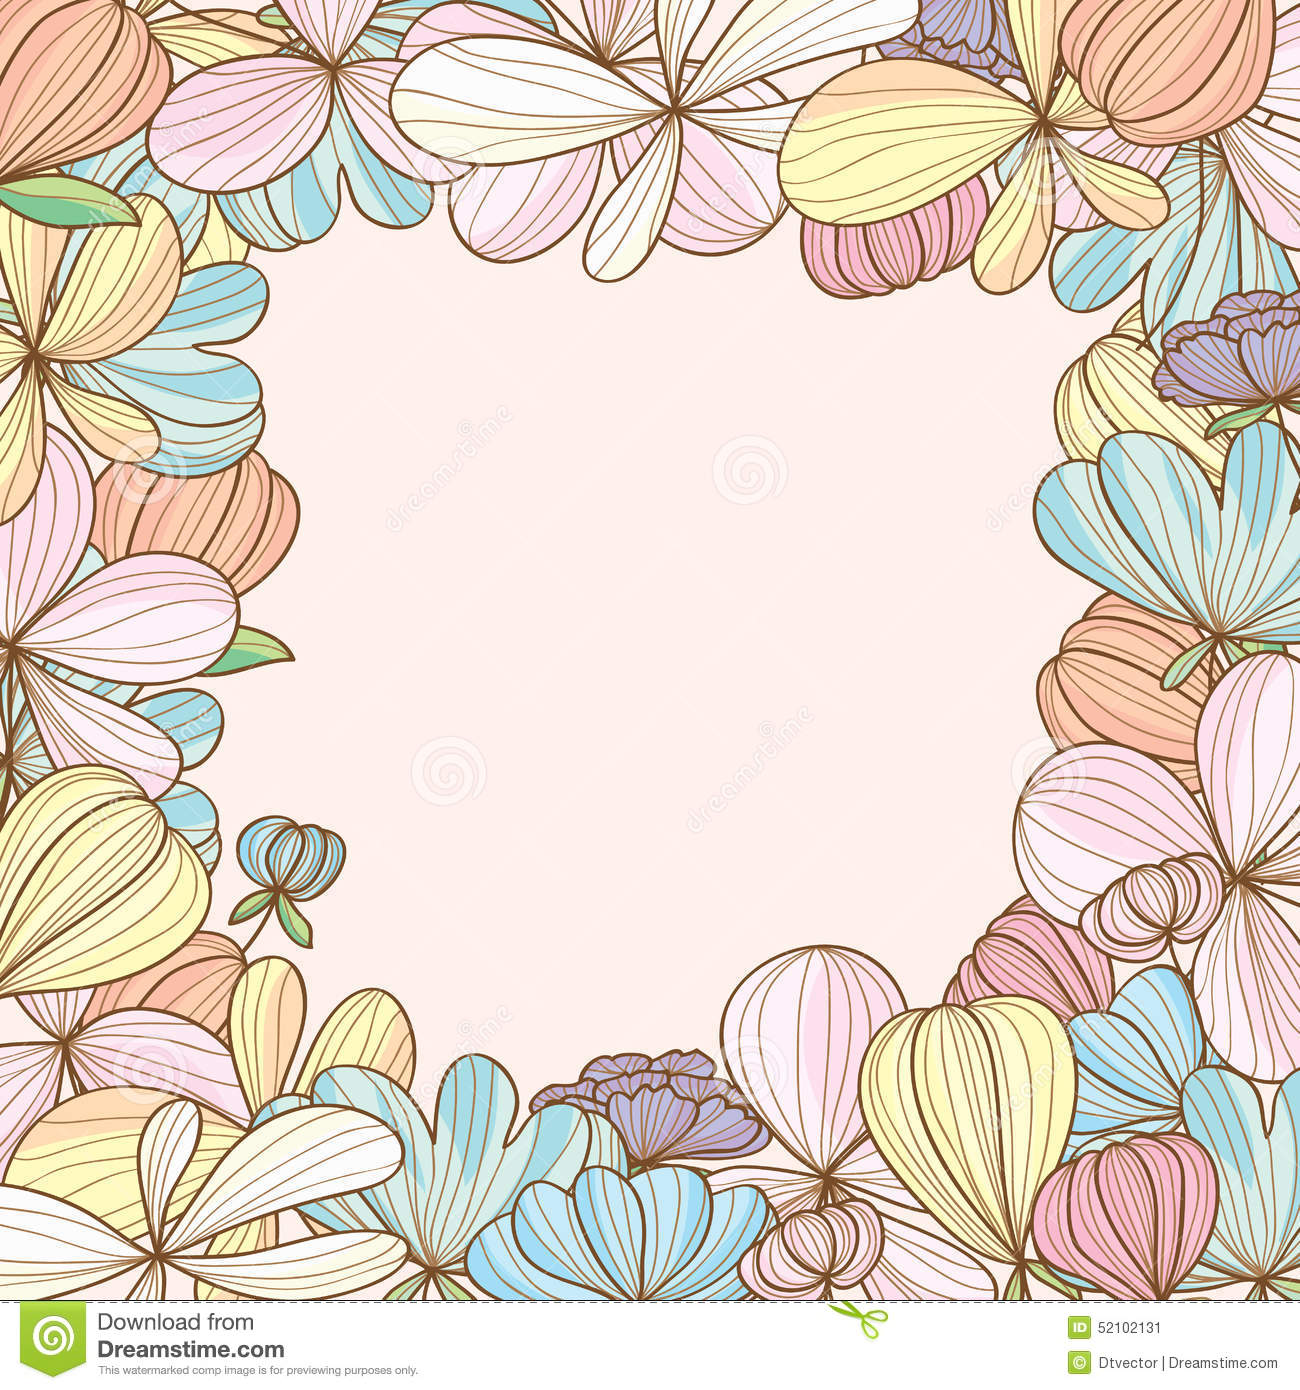 Illustration flowers pastel color around frame card hand drawing.